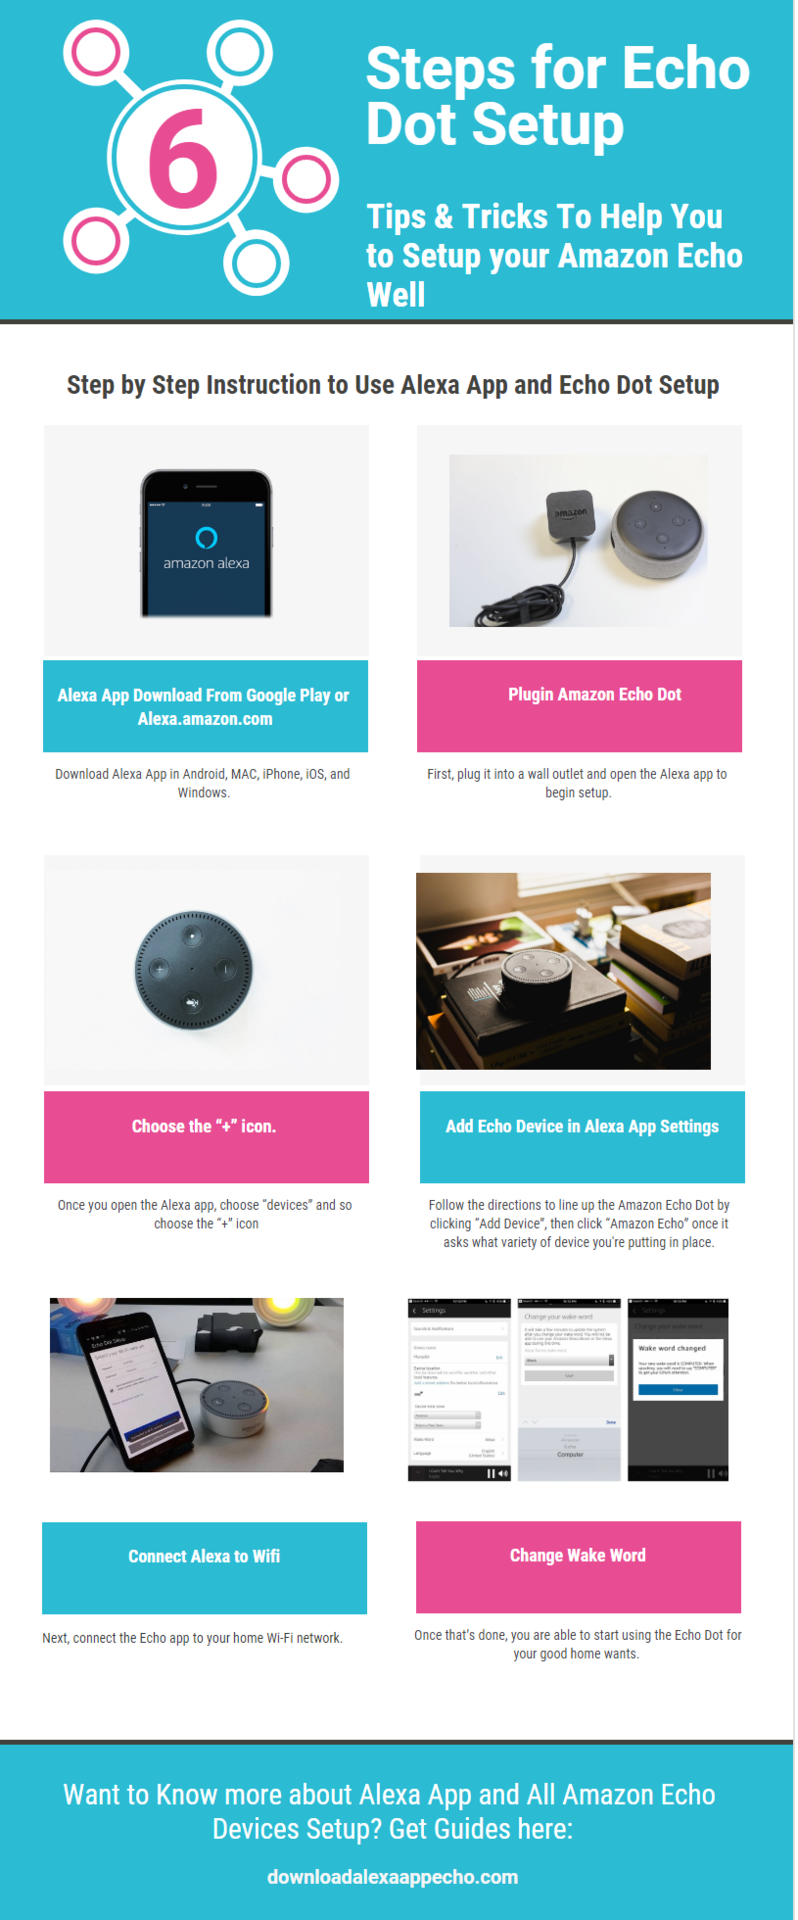 Know all about the Alexa app and Amazon echo devices - echo, echo dot, echo auto, etc. Also, setup all echo devices  at one place. Download Alexa app in your devices for echo dot setup or   other and Alexa login your amazon account. Alexa setup is needed with Amazon echo dot  setup.